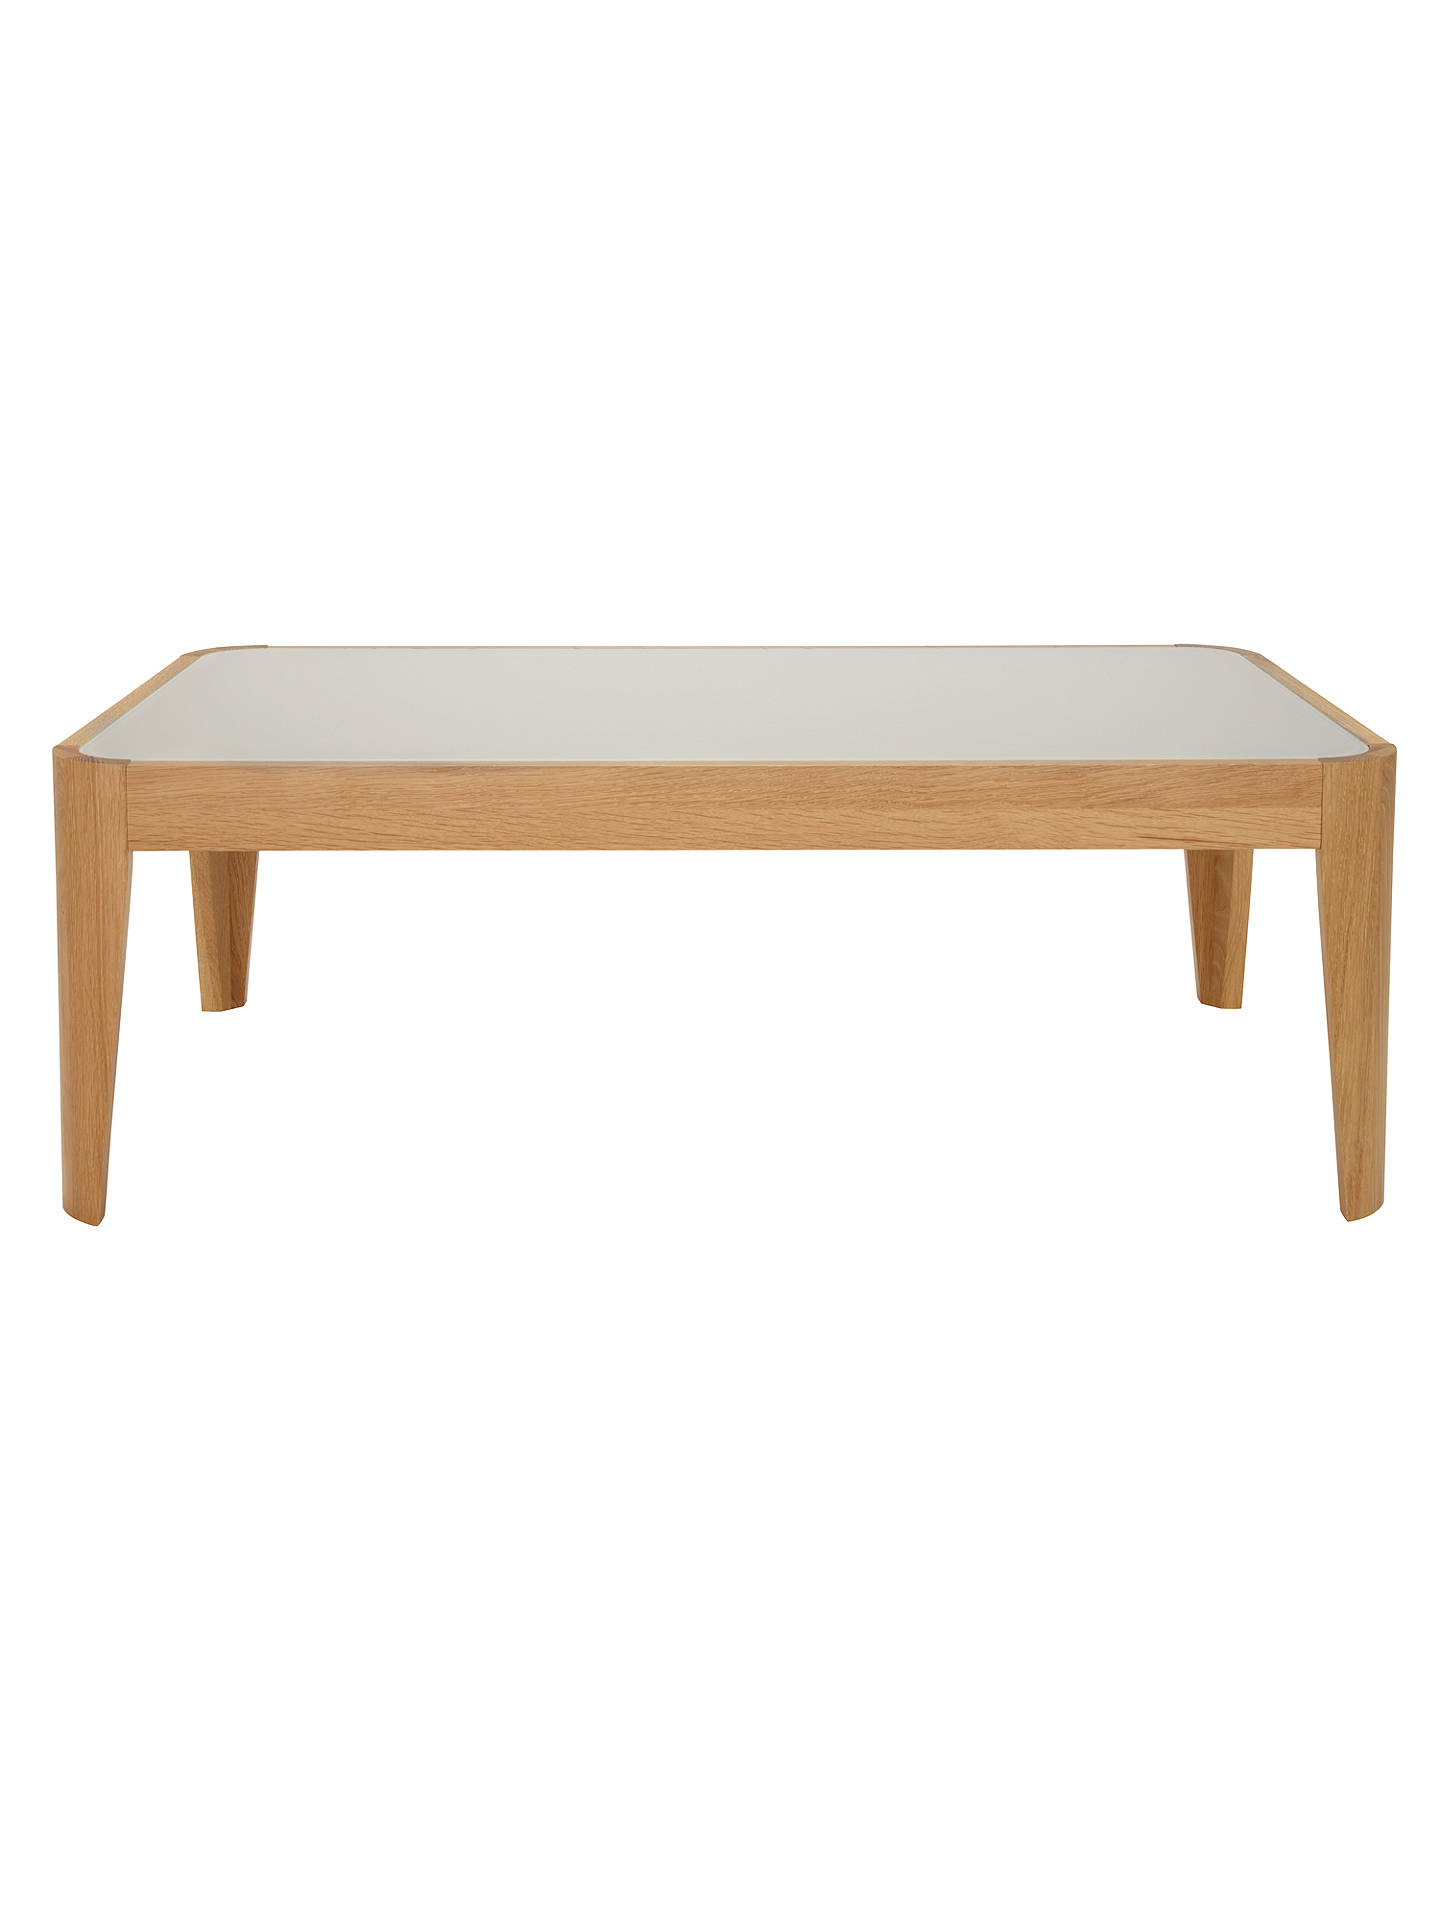 Buy John Lewis Domino Glass Top Coffee Table Online at johnlewis.com